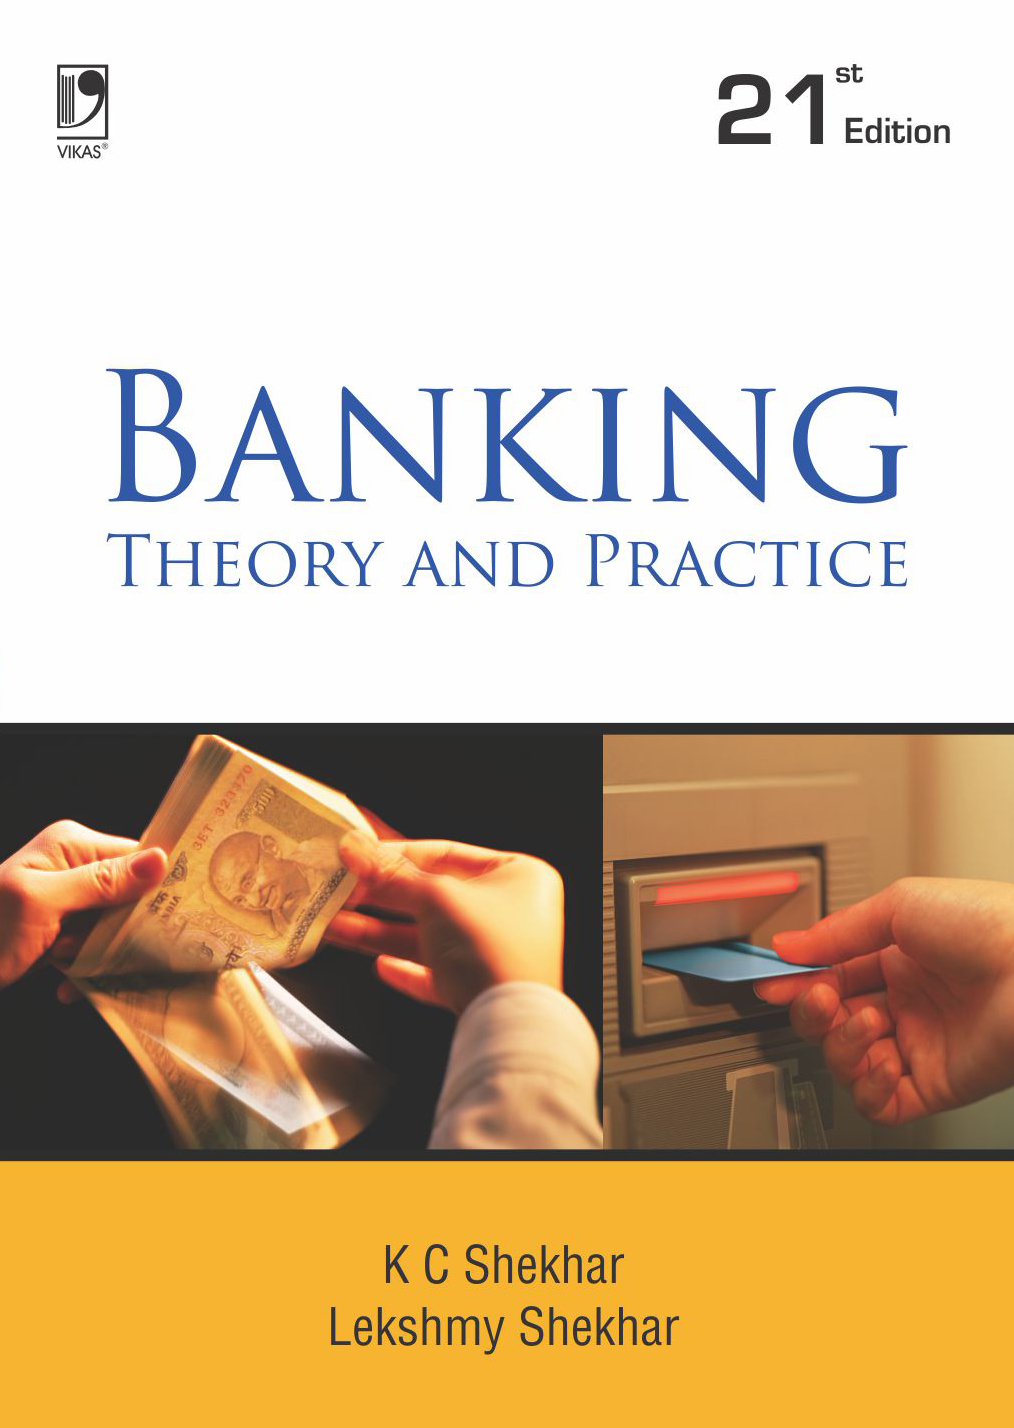 Banking Theory and Practice, 21/e  by K C Shekhar